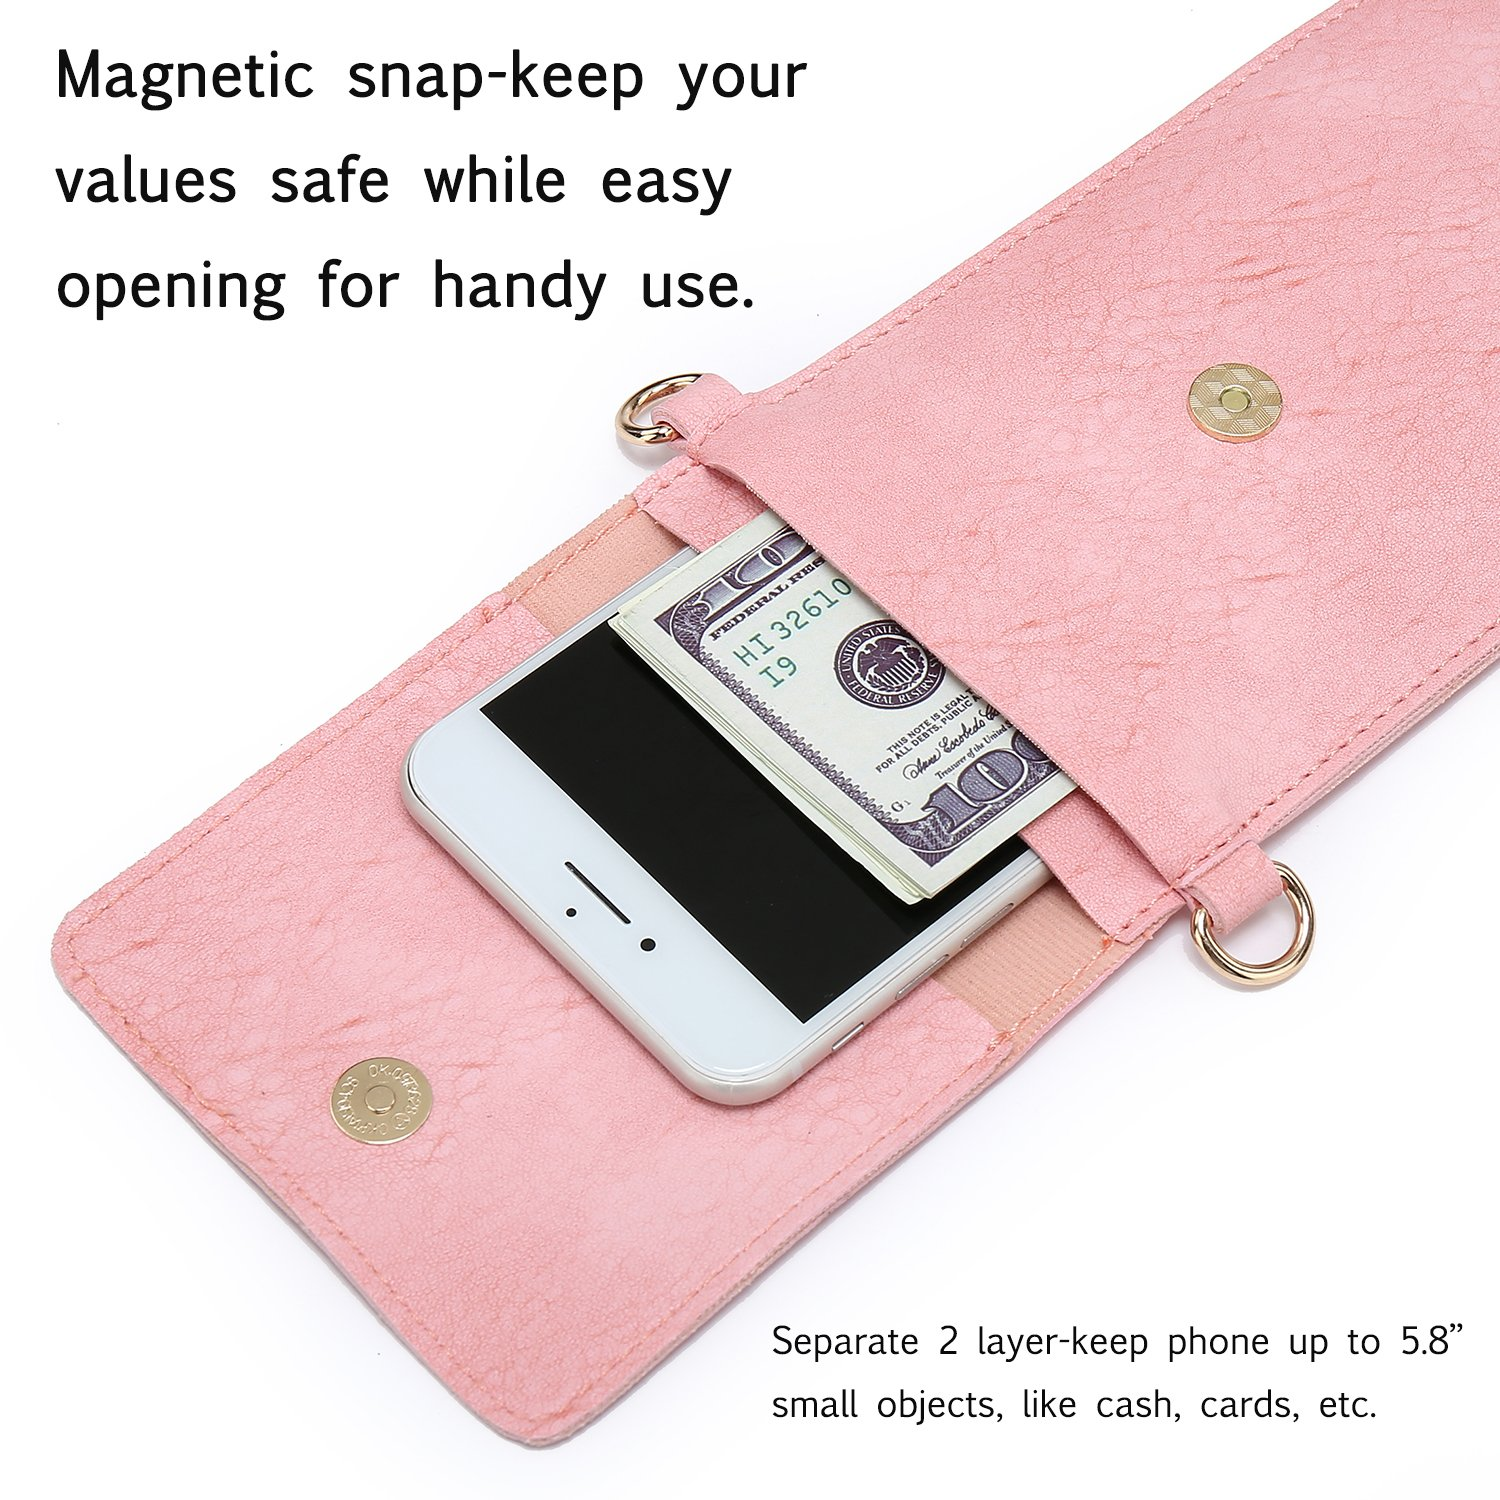 seOSTO Small Crossbody Bag, Cell Phone Purse Smartphone Wallet with 2 Shoulder Strap Handbag for Women (pink) by seOSTO (Image #6)